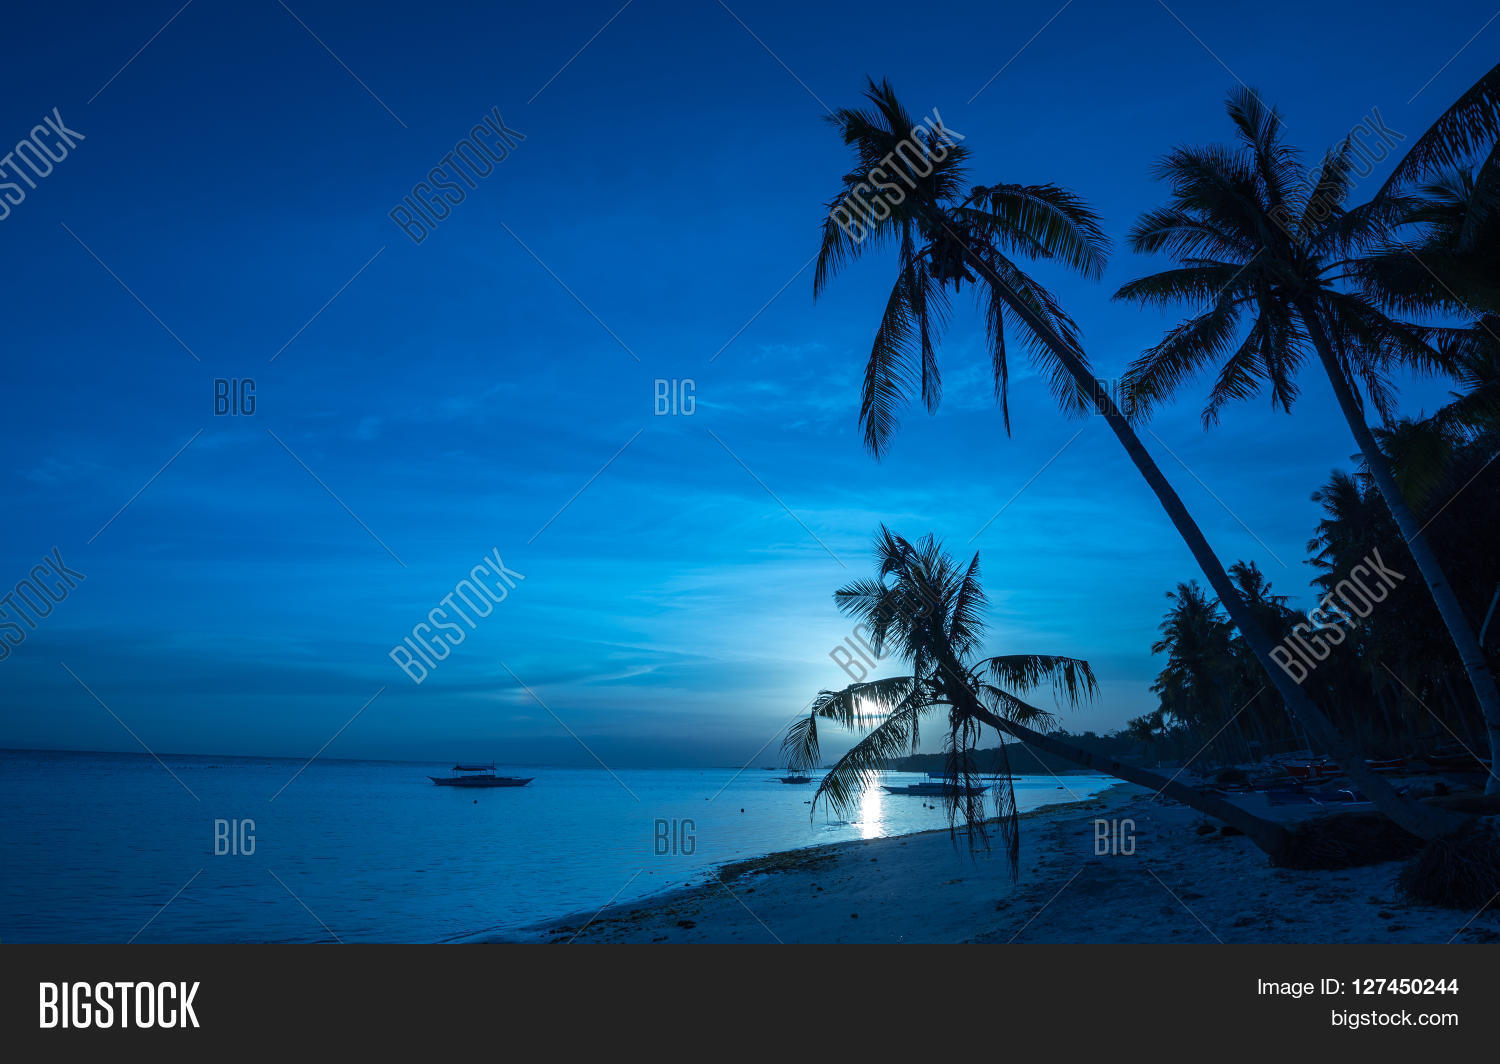 Tropical Beach Background Night Image & Photo | Bigstock